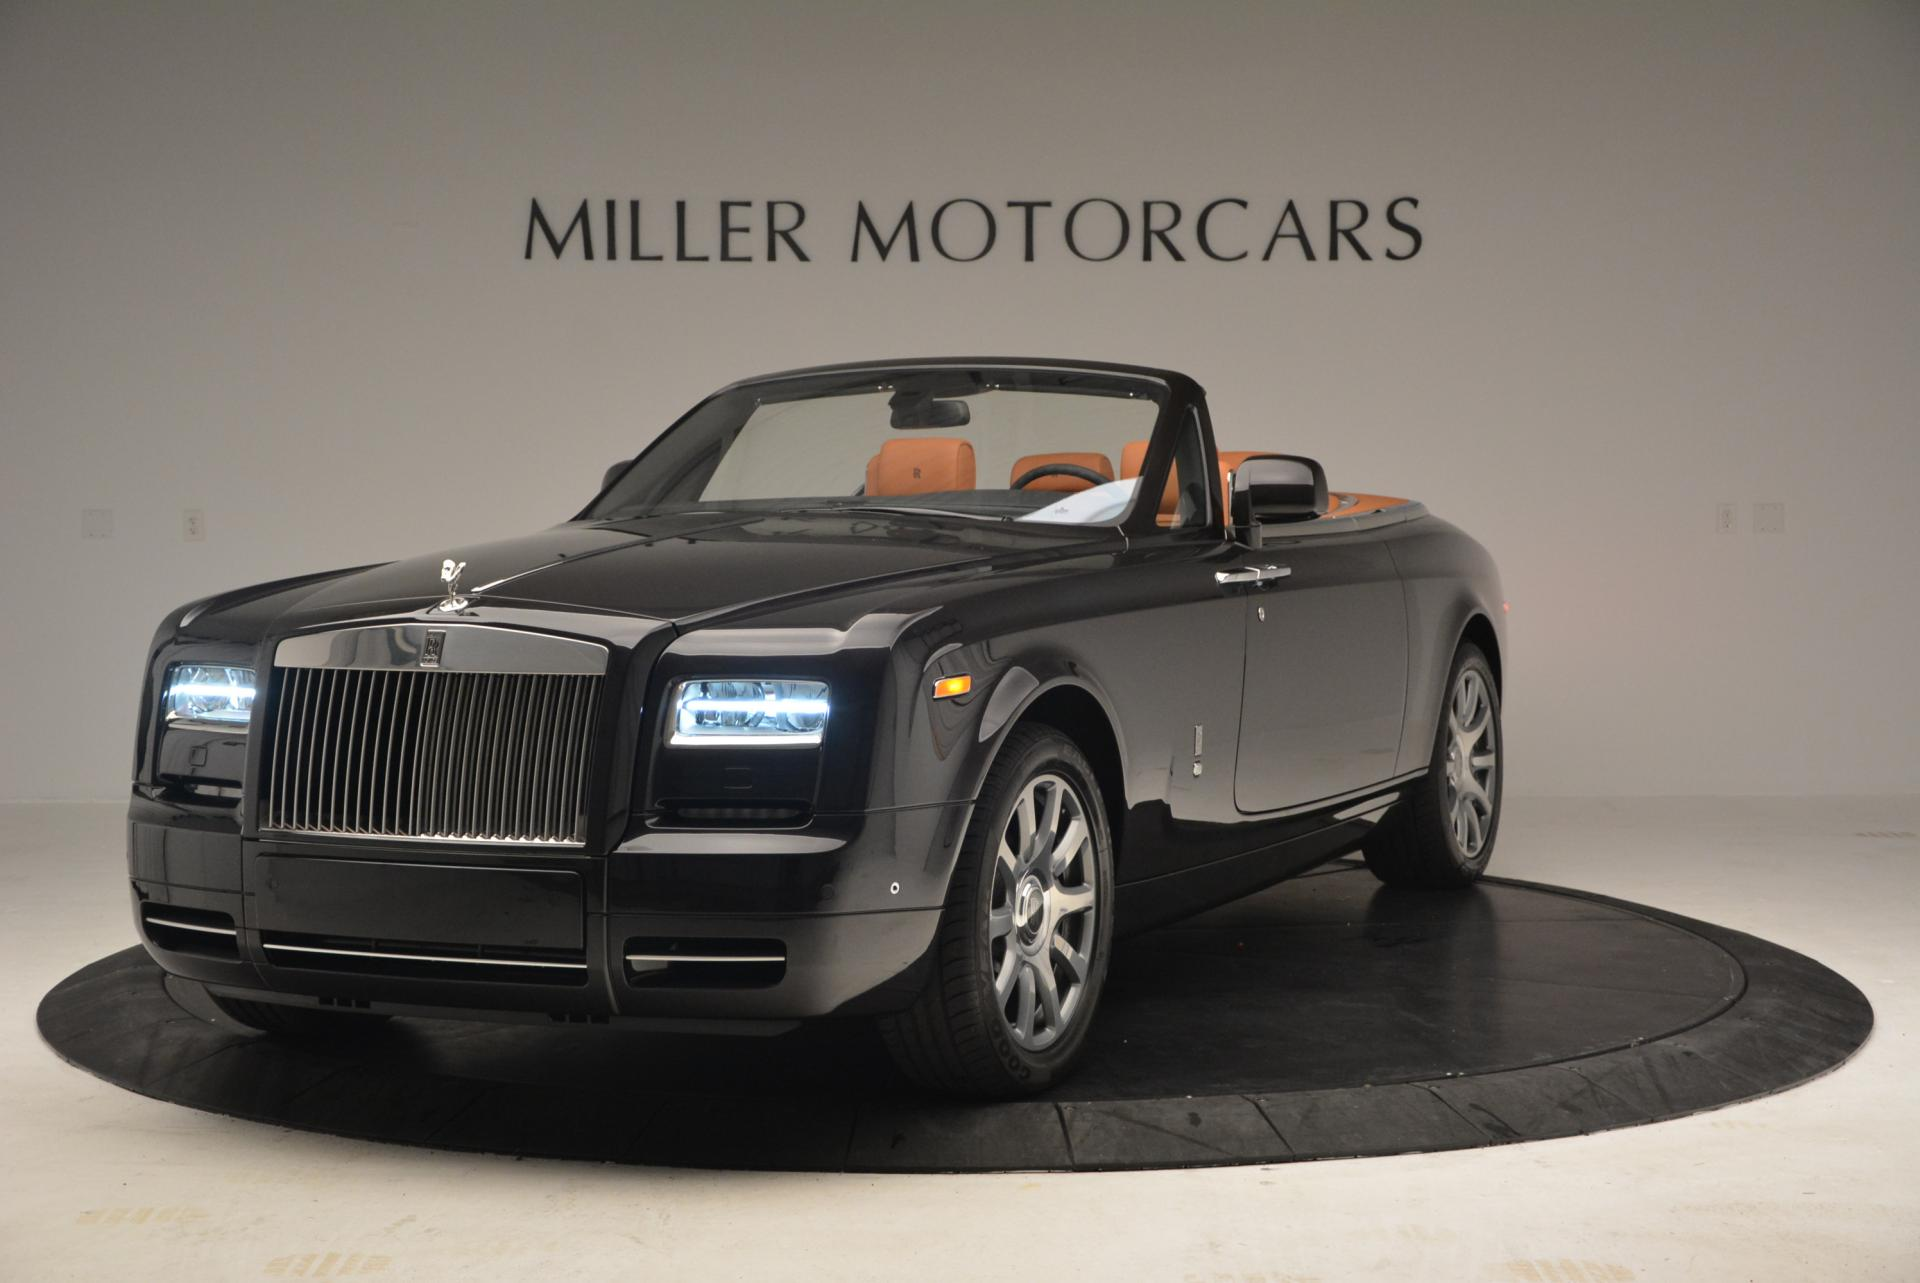 New 2016 Rolls-Royce Phantom Drophead Coupe Bespoke for sale Sold at Rolls-Royce Motor Cars Greenwich in Greenwich CT 06830 1